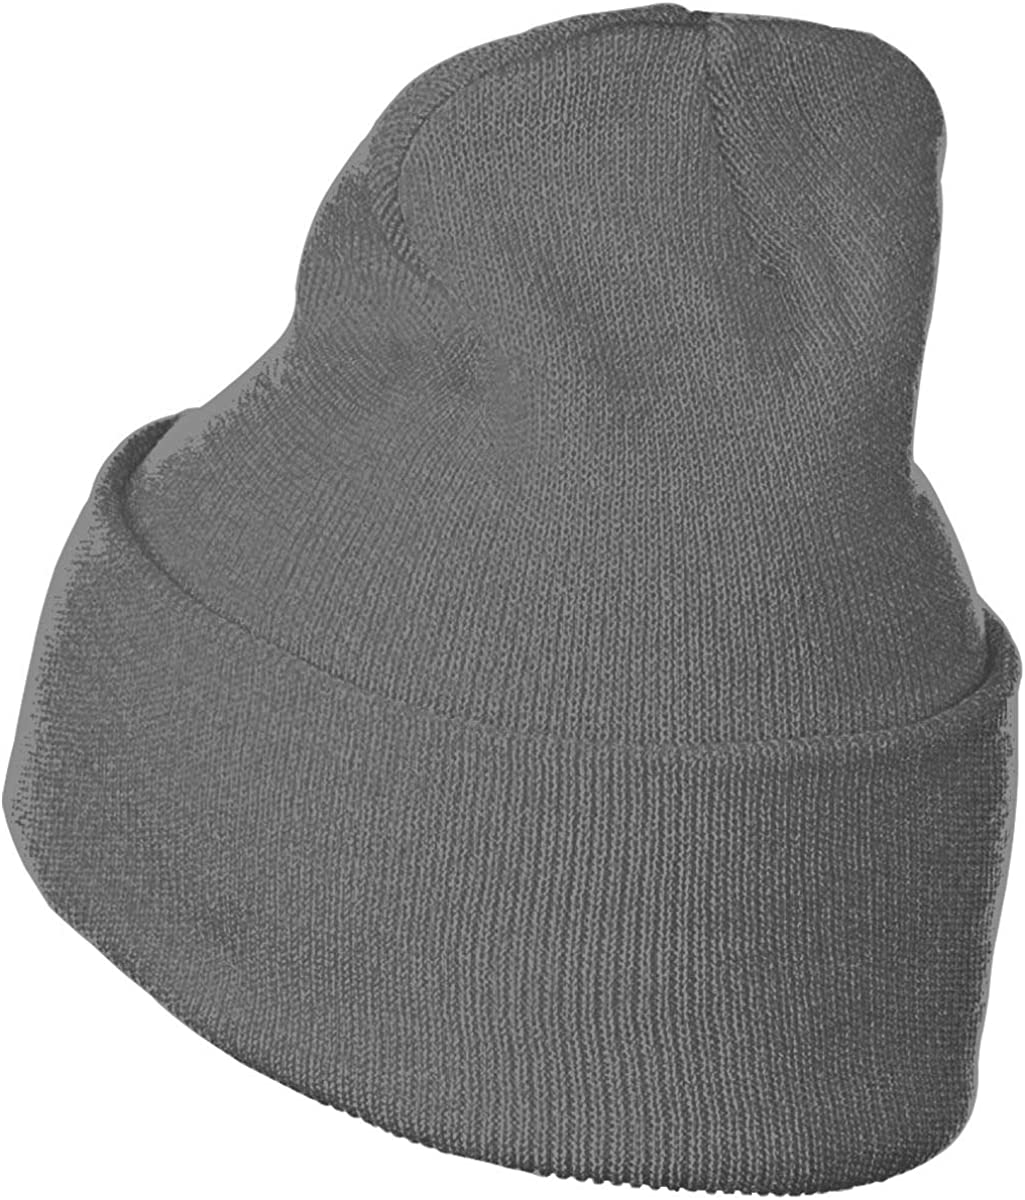 FORDSAN CP Uruz Rune1 Mens Beanie Cap Skull Cap Winter Warm Knitting Hats.